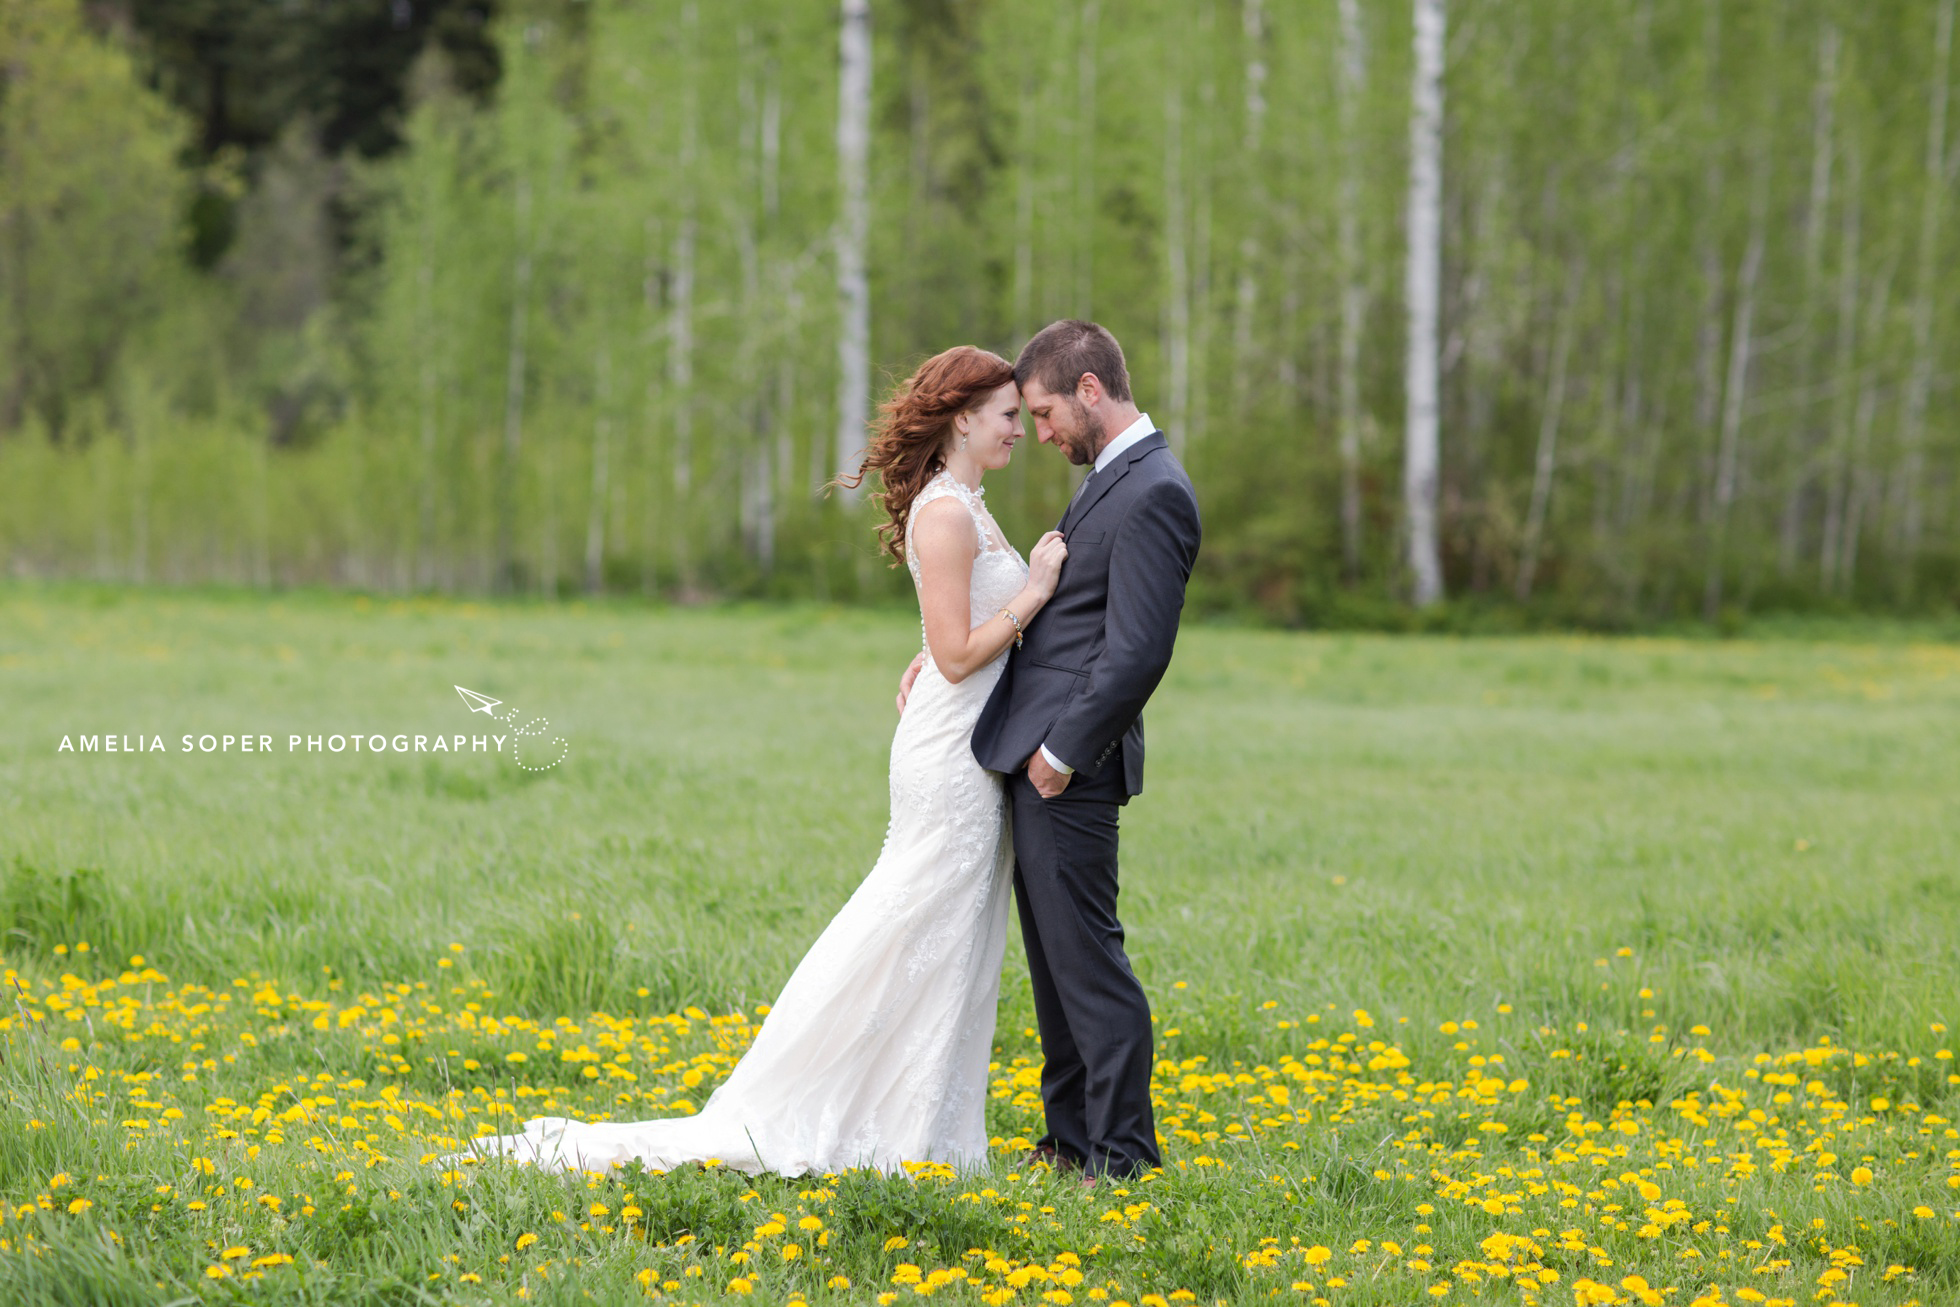 Wedding at Mountain Springs Lodge in Leavenworth, WA